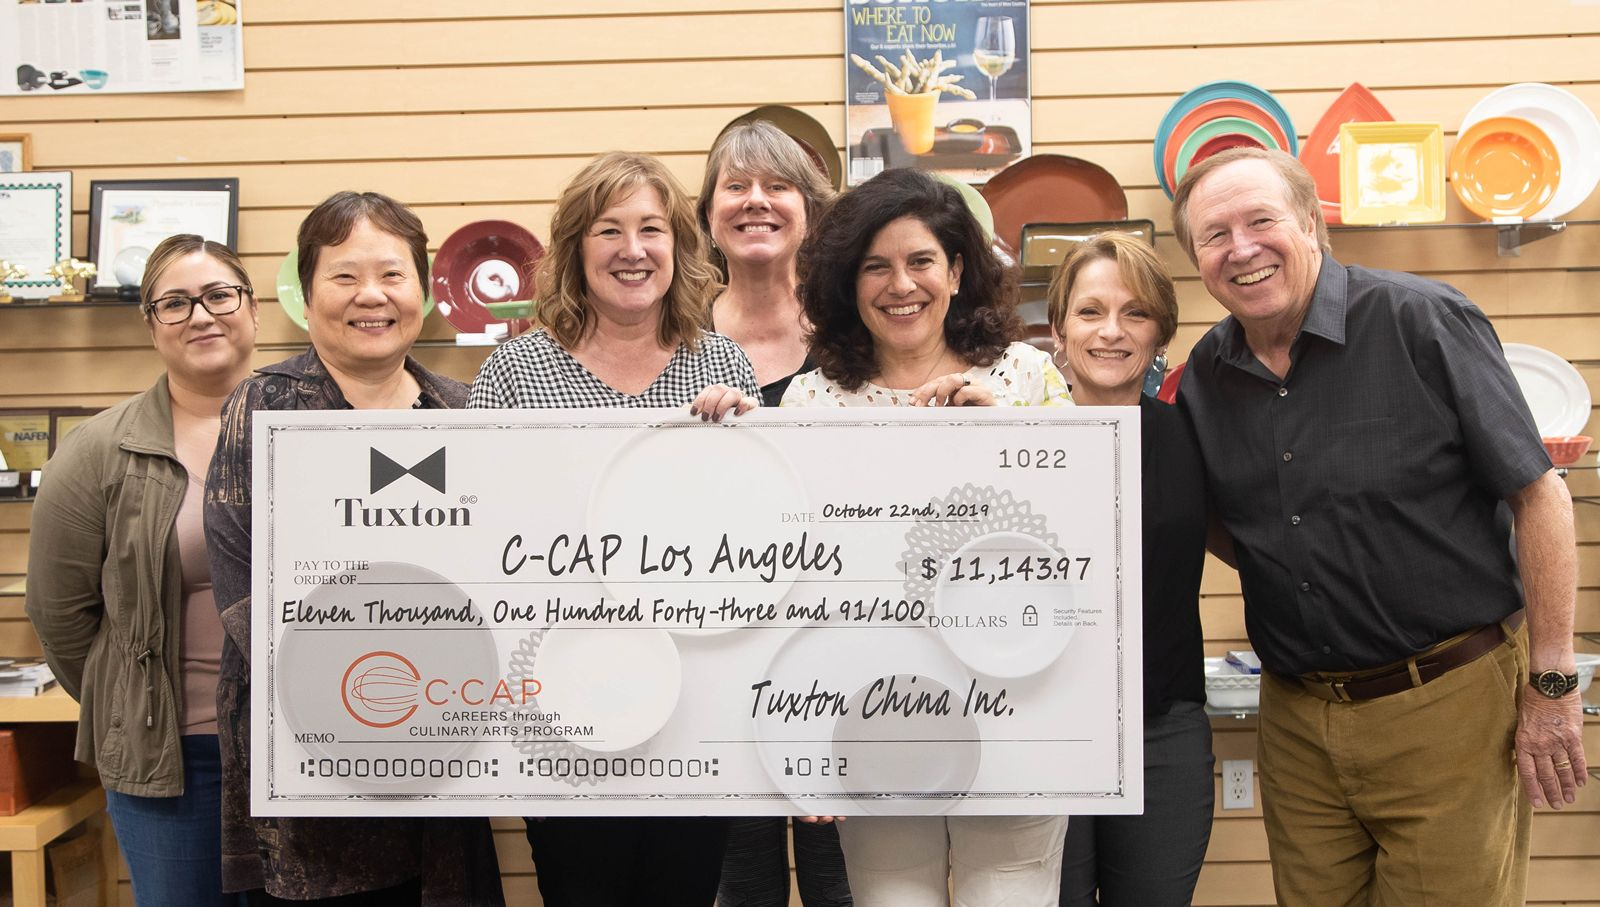 Pictured left to right: Isabel Leon (Tuxton), Apryl Lam (Tuxton), Jennifer Rolander (Tuxton), Lorri Wressell (C-CAP), Lisa Fontanesi (C-CAP), Gail Carney (C-CAP), Bill Burden (Tuxton).